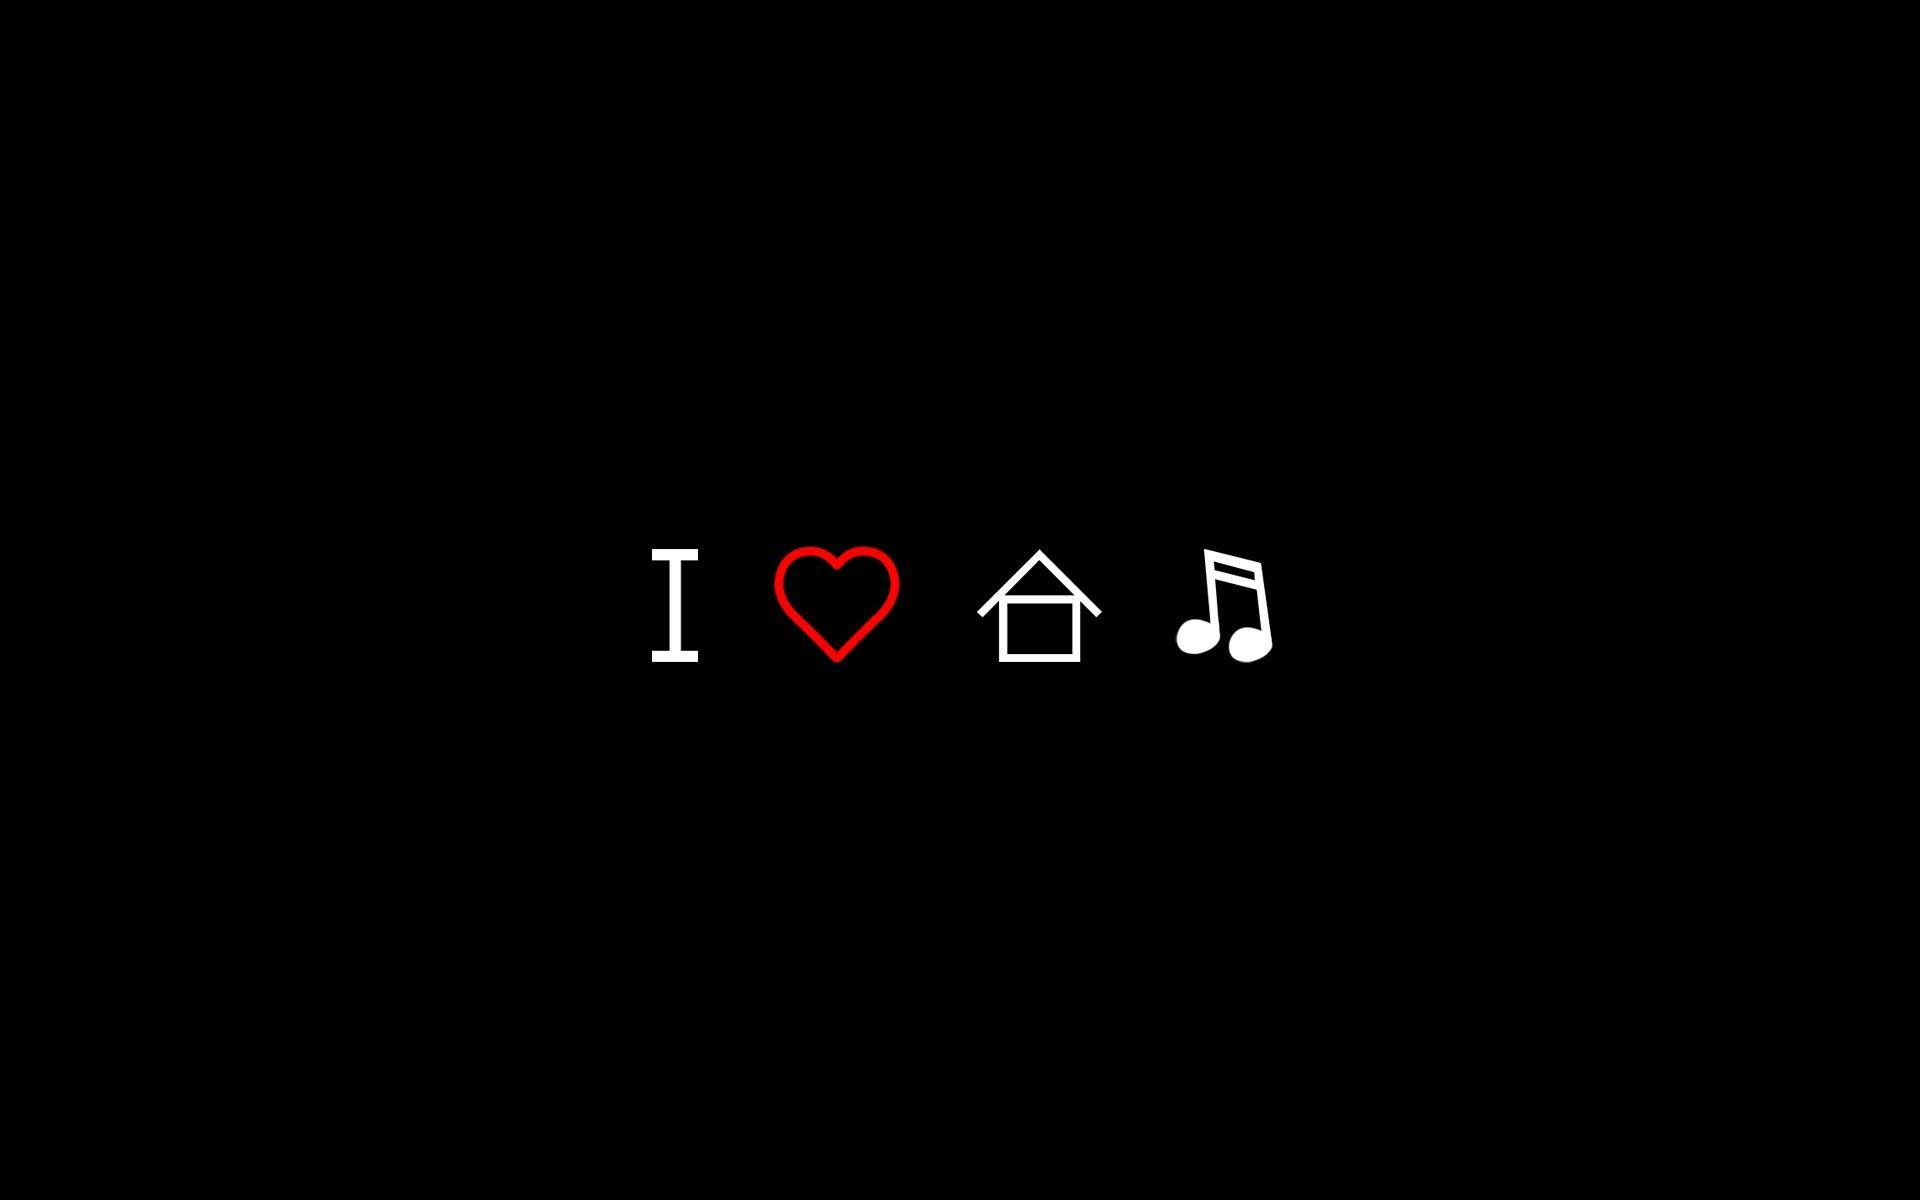 House Music Backgrounds 1920x1200